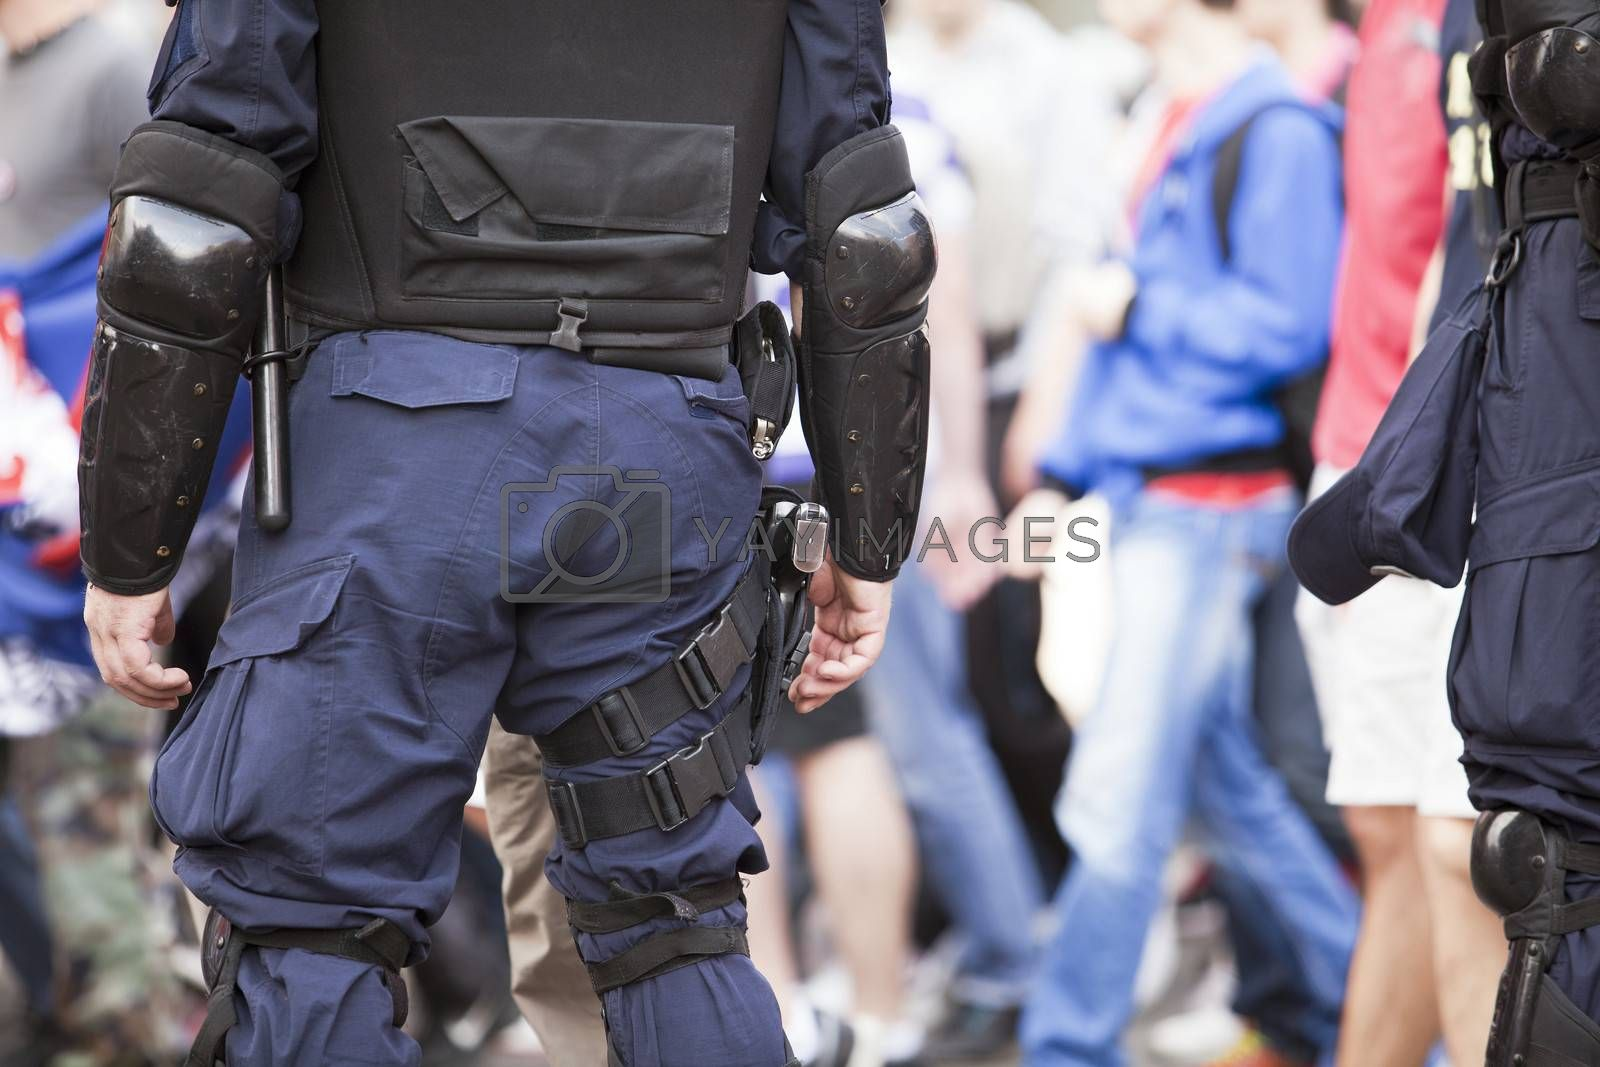 Police officer with gear on duty